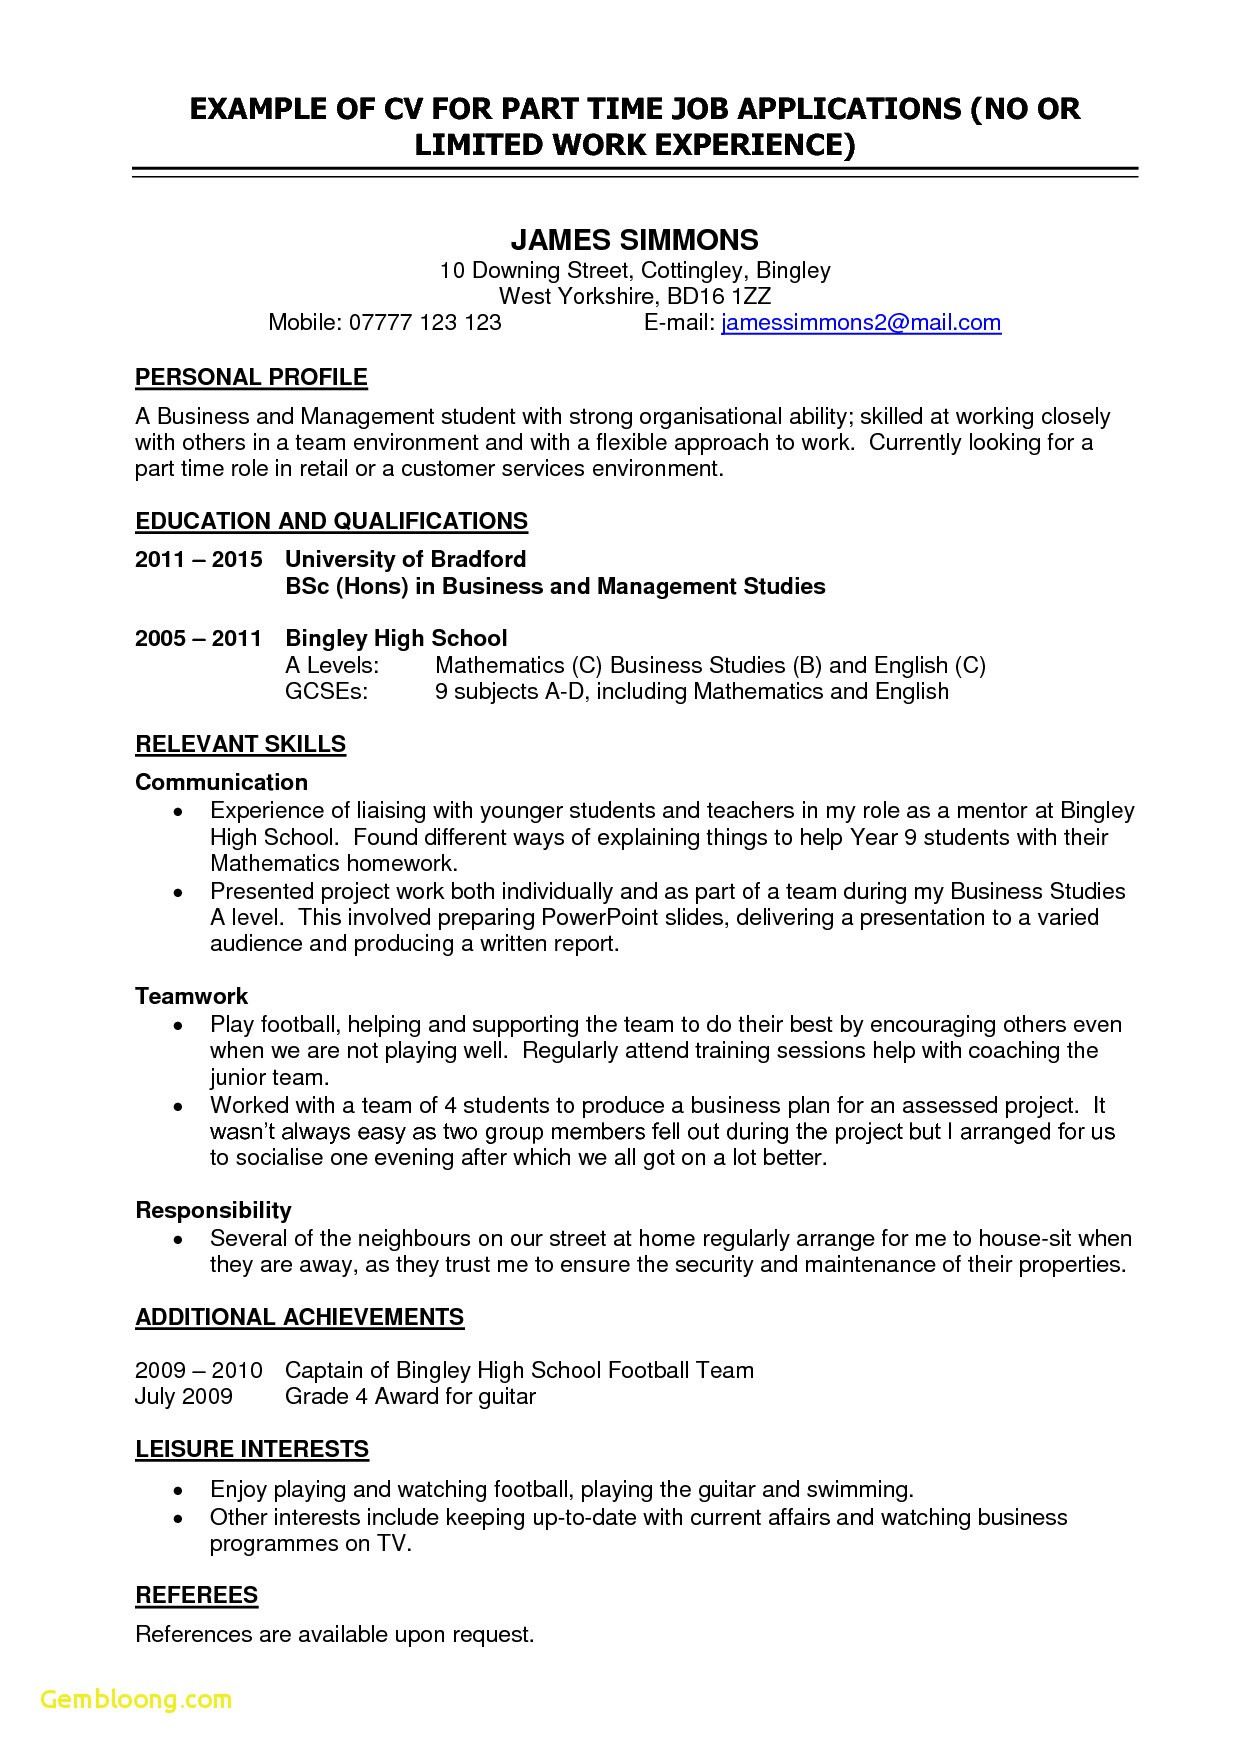 resume template for freshman college student example-Resume Template For College Student Example College Resume Templates Resume Outline Examples Unique Od 1-o